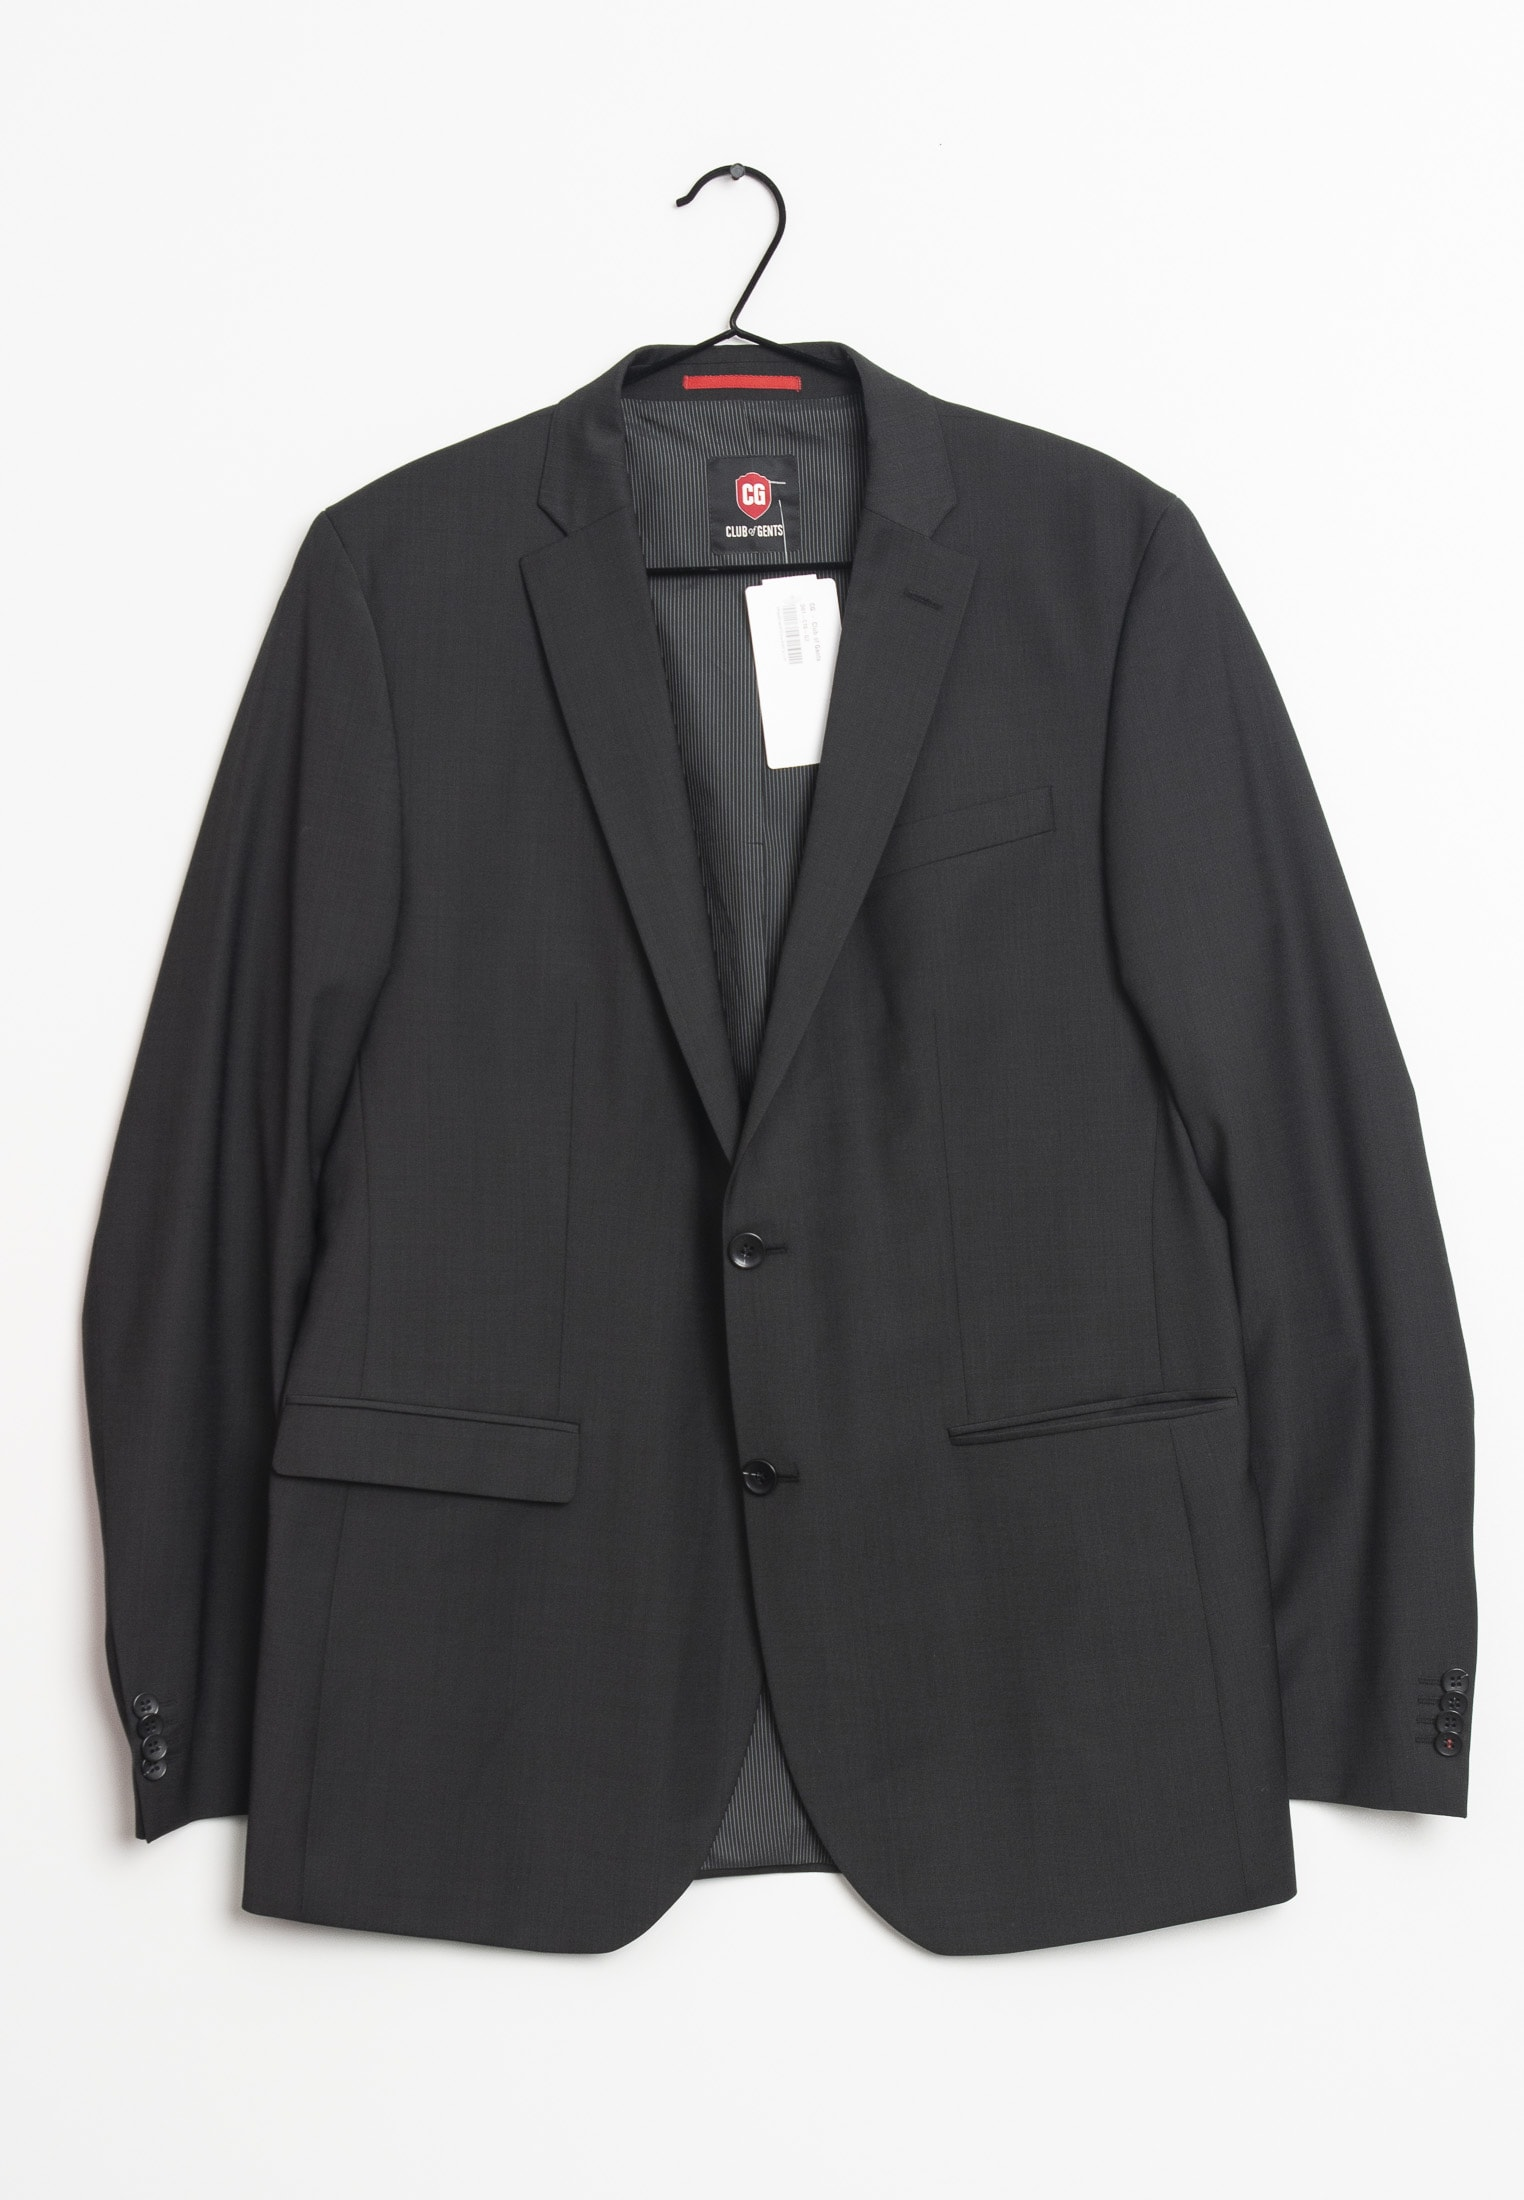 CG – Club of Gents blazer, sort, 106